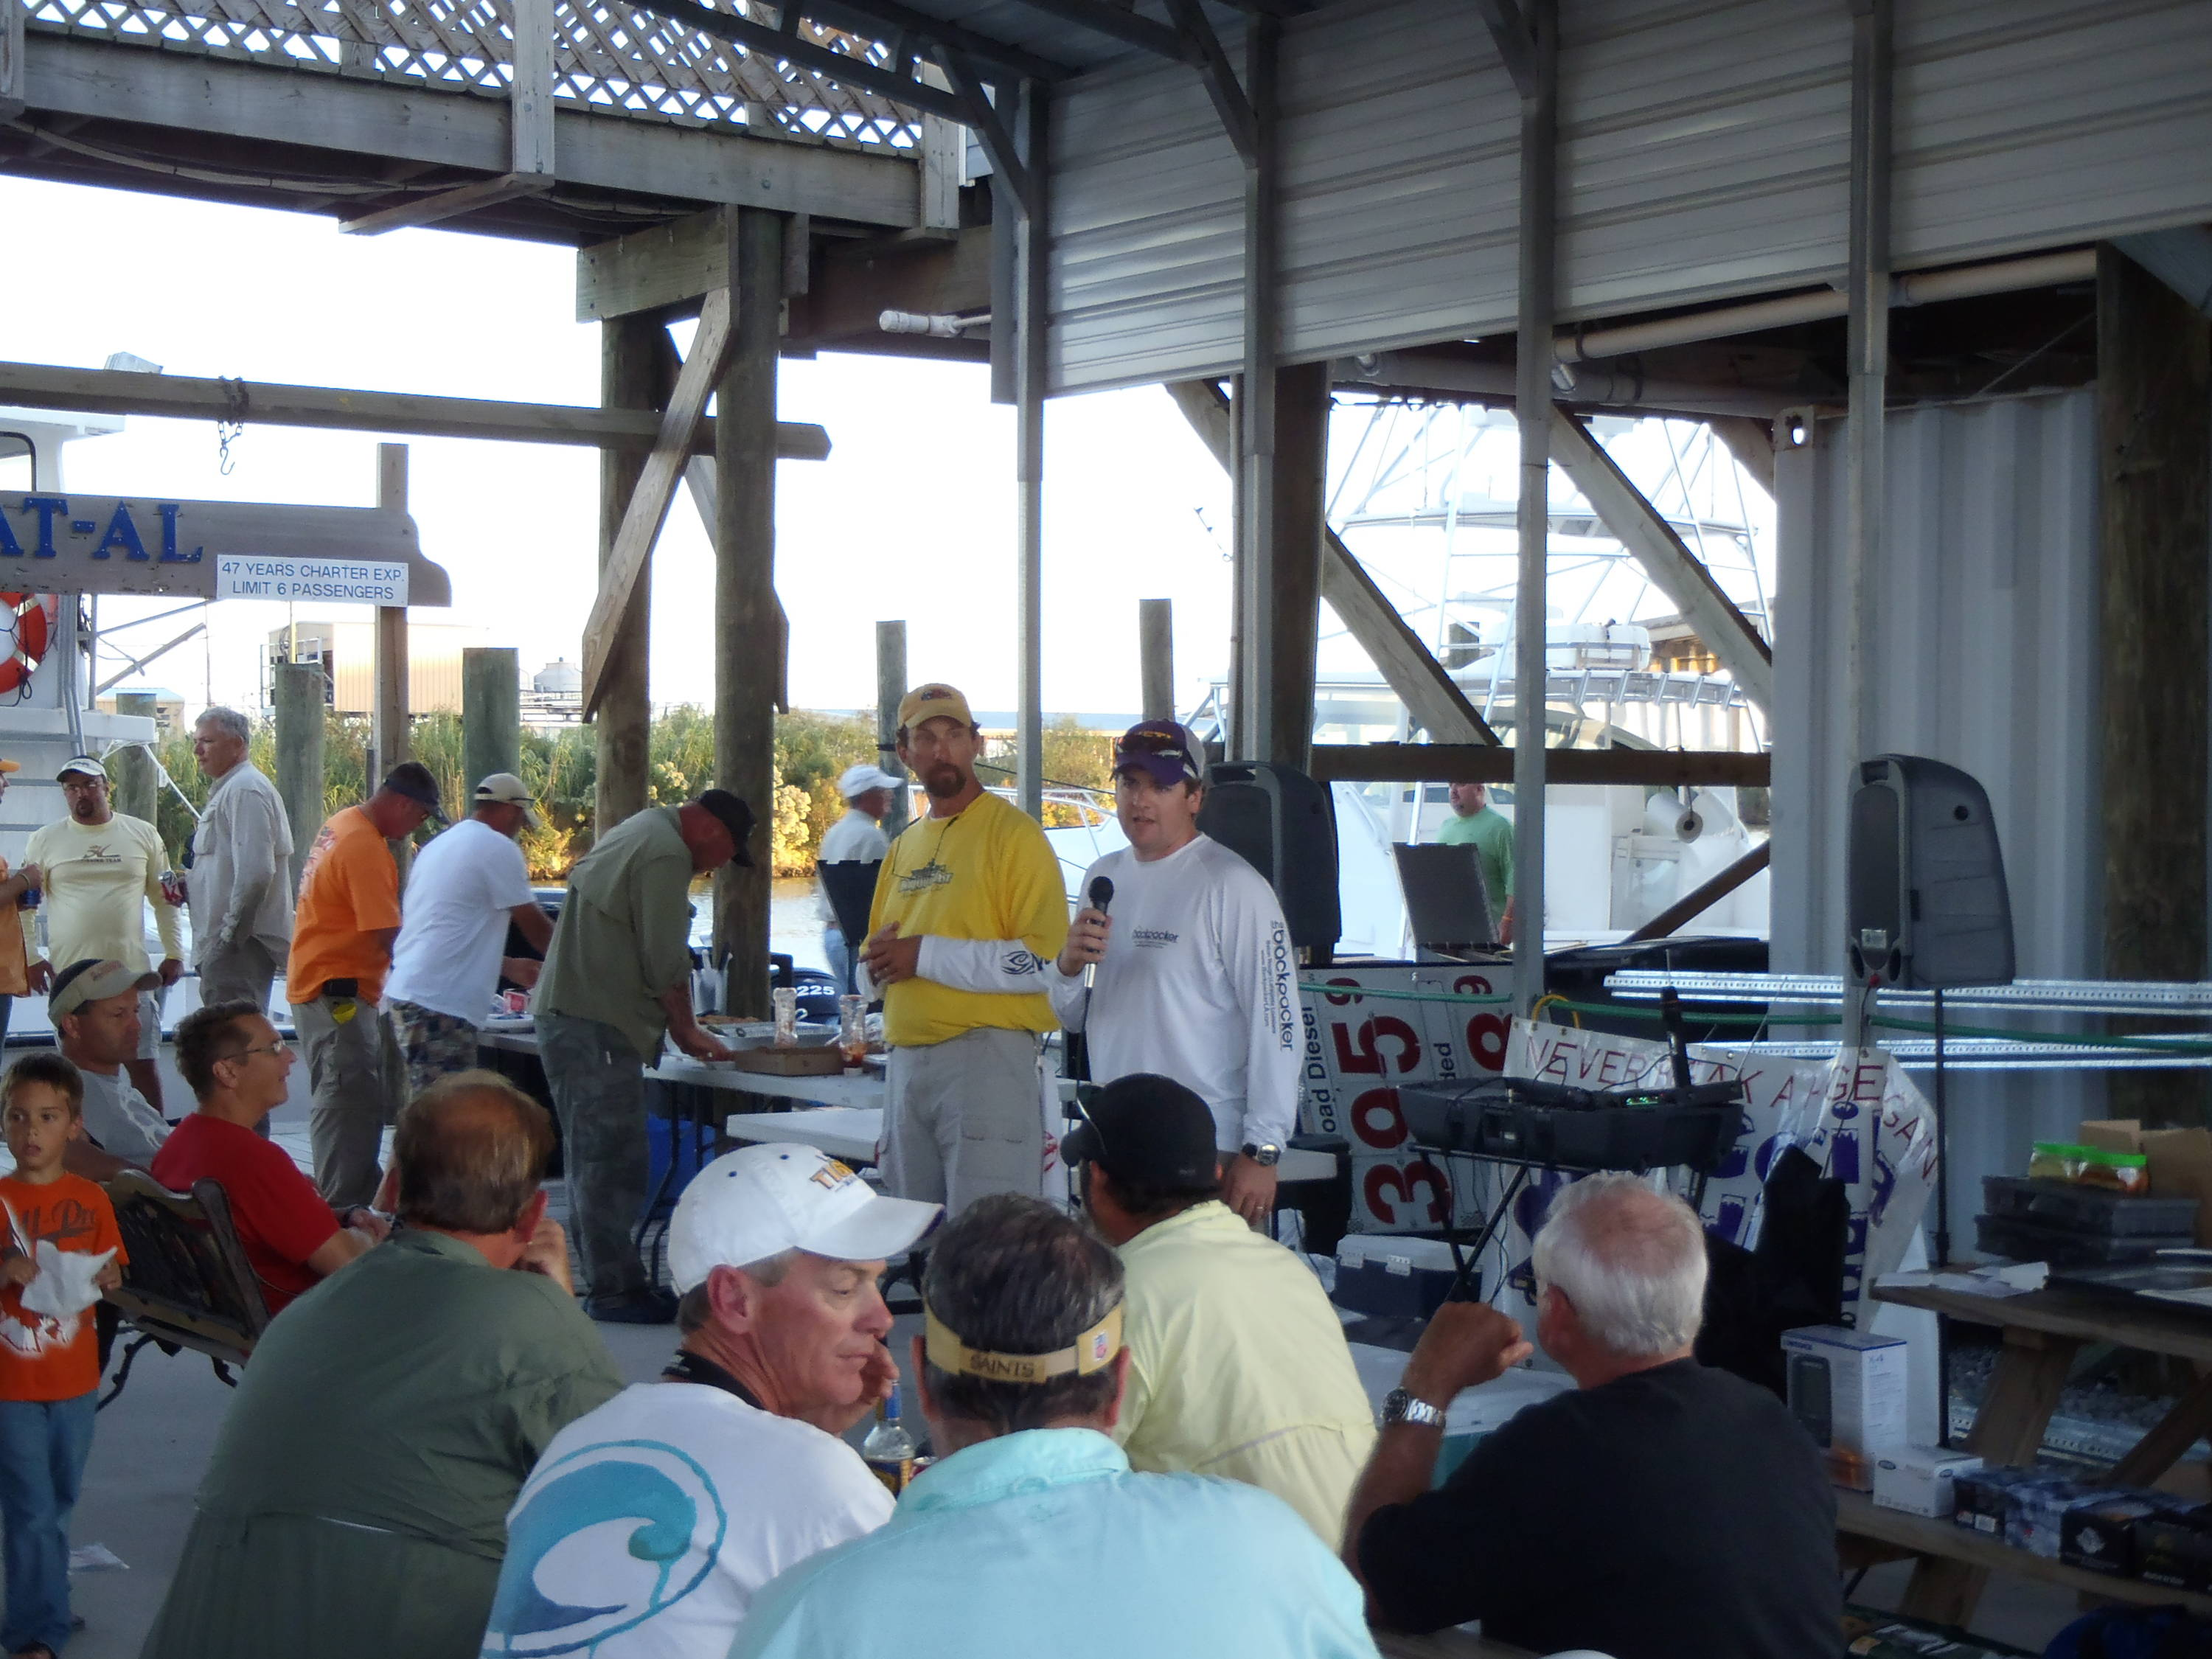 The Backpacker Owner, Michael Mathews, helps announce the results of Fall N Tide.